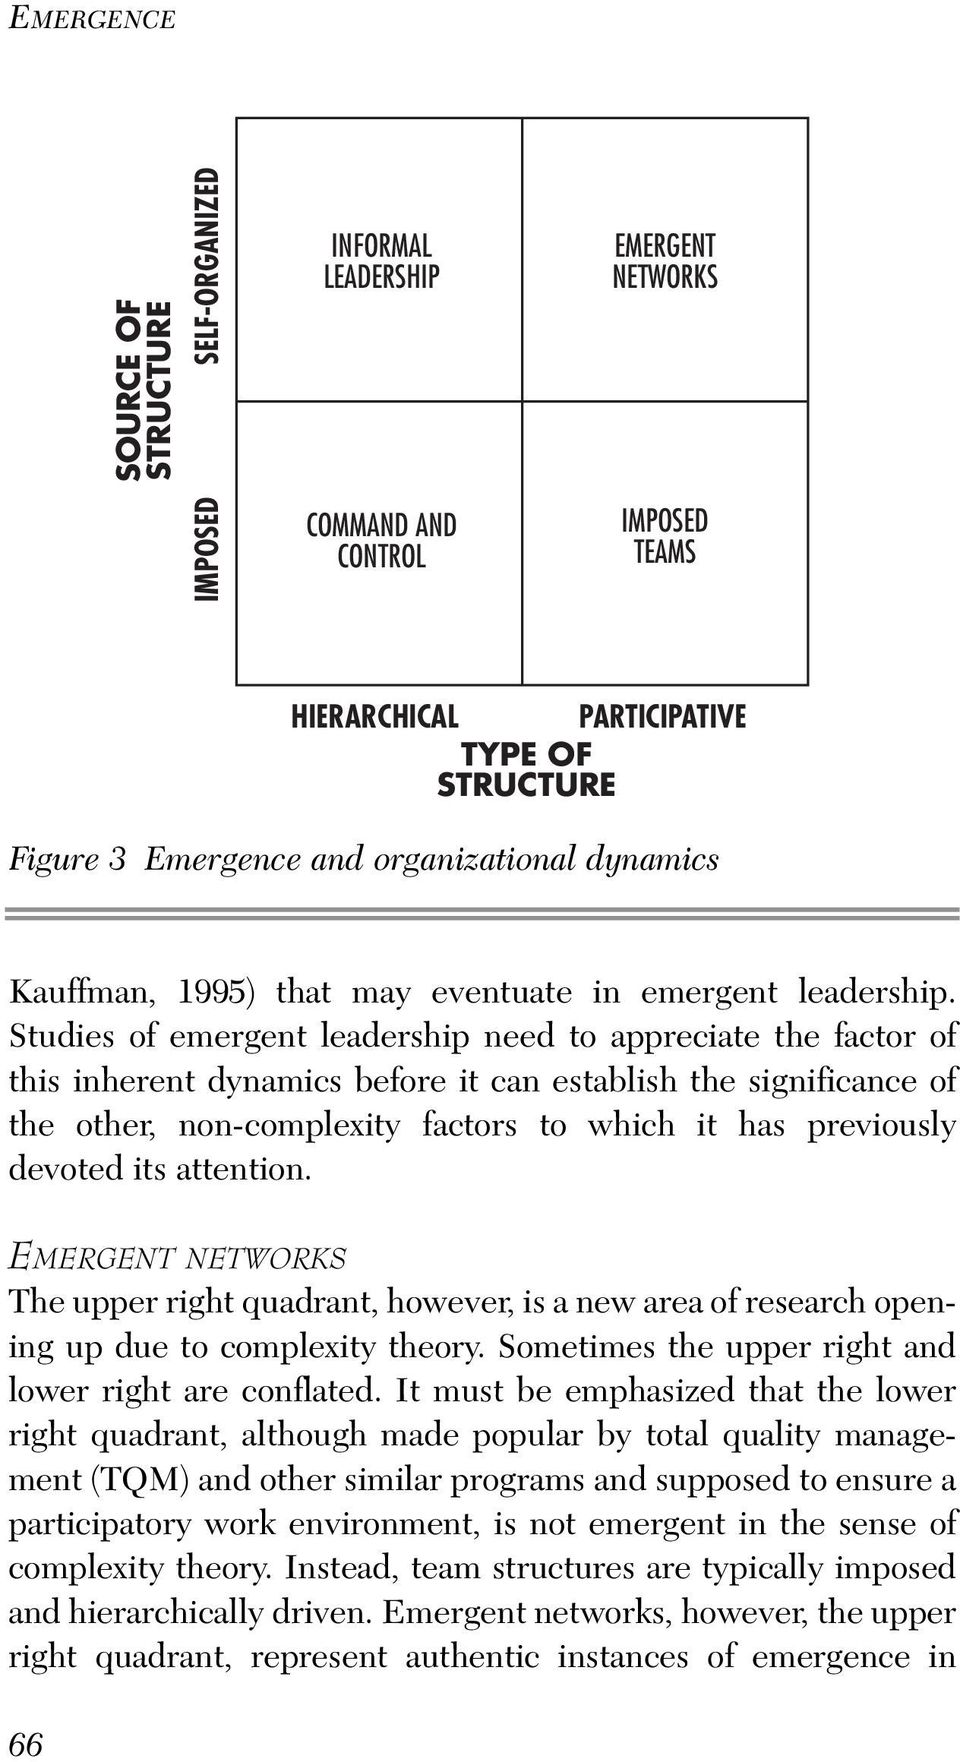 Studies of emergent leadership need to appreciate the factor of this inherent dynamics before it can establish the significance of the other, non-complexity factors to which it has previously devoted